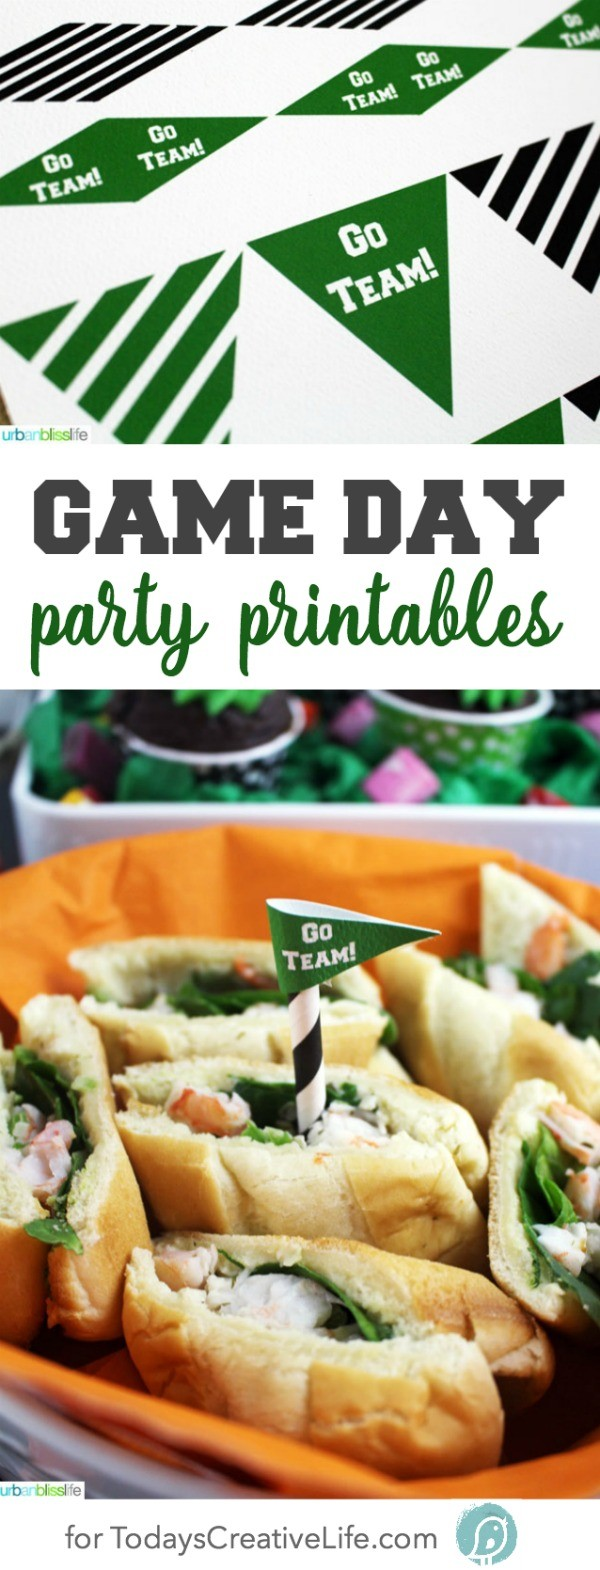 Free Game Day Party Printables | Free printables always make any event better! These football printable are great for all season or for super bowl! Designed by UrbanBlissLife for TodaysCreativeLife.com